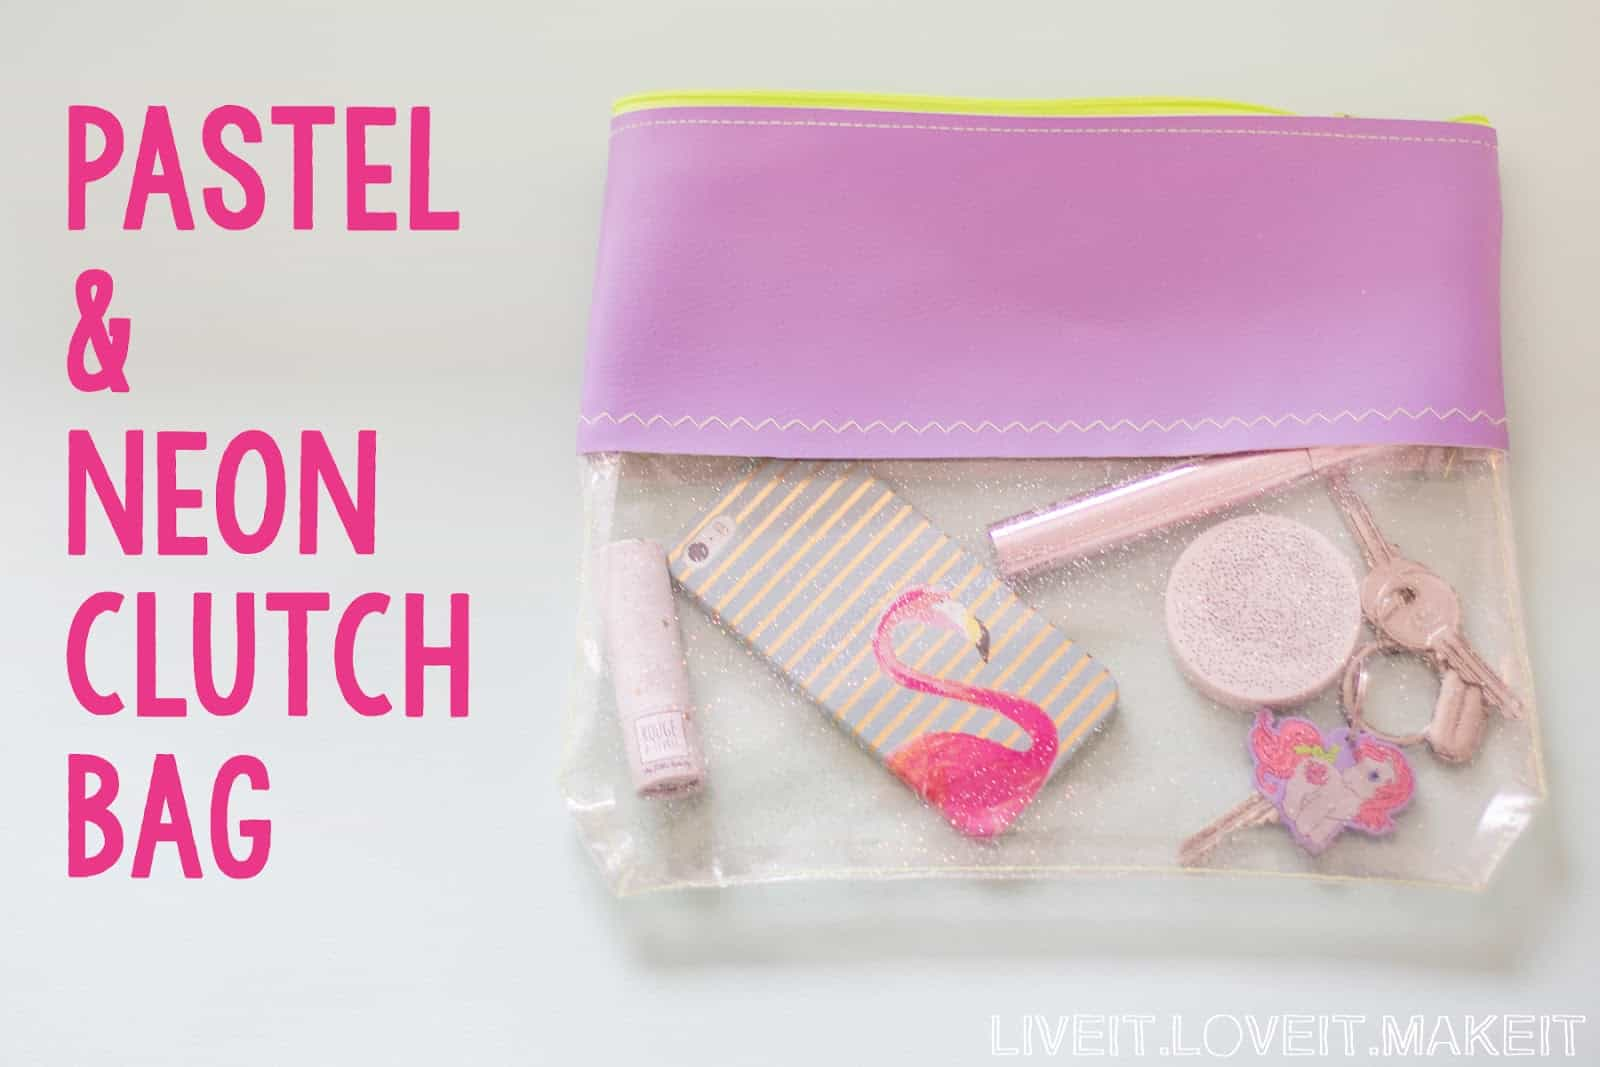 Pastel, neon, and plastic clutch bag